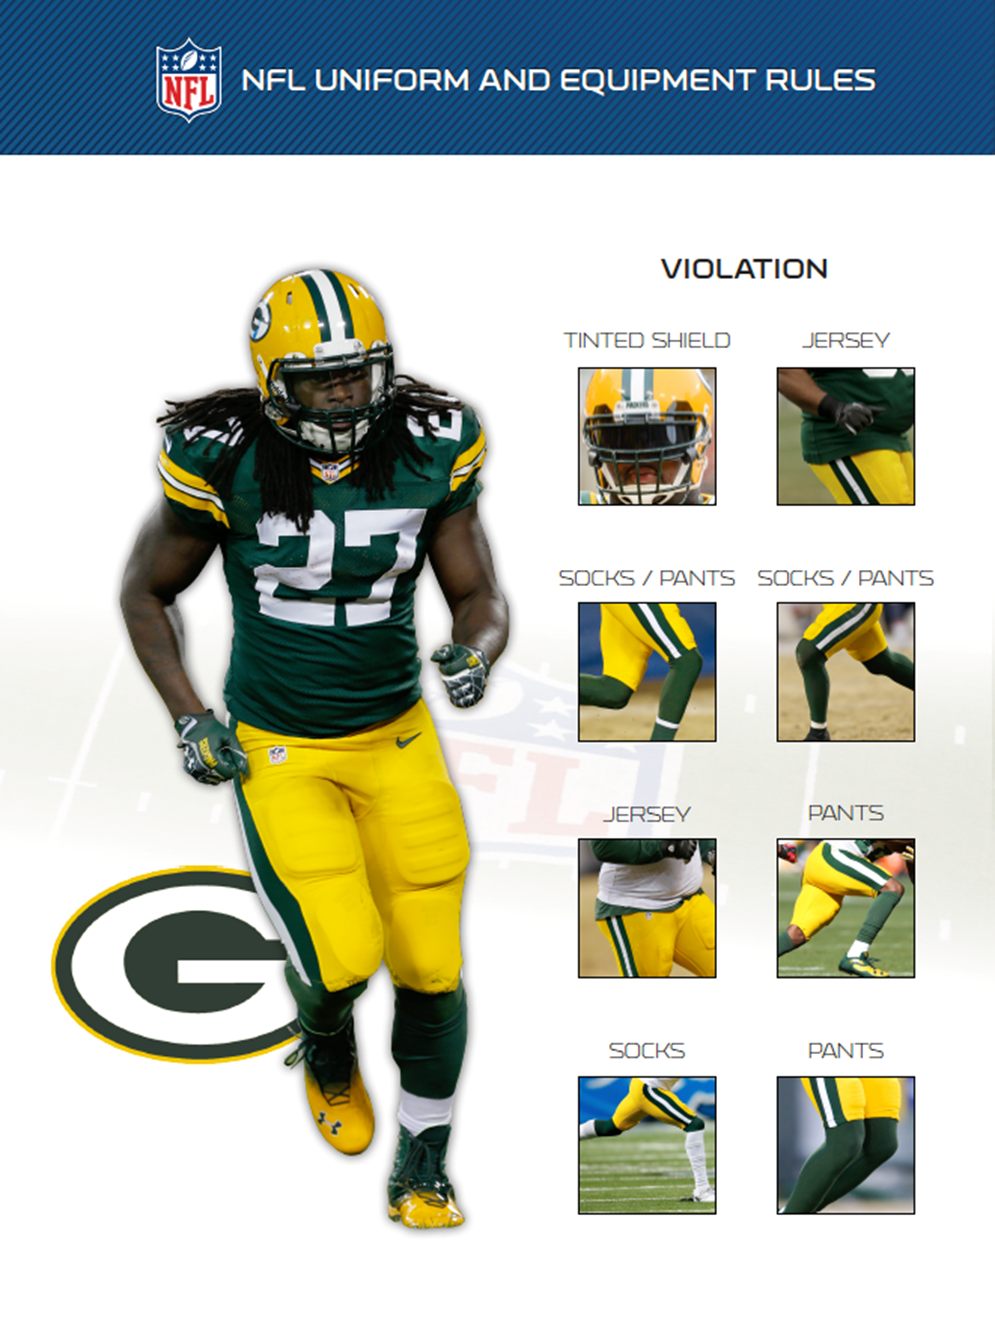 See how every NFL team's uniform and equipment should be worn and examples of violations.